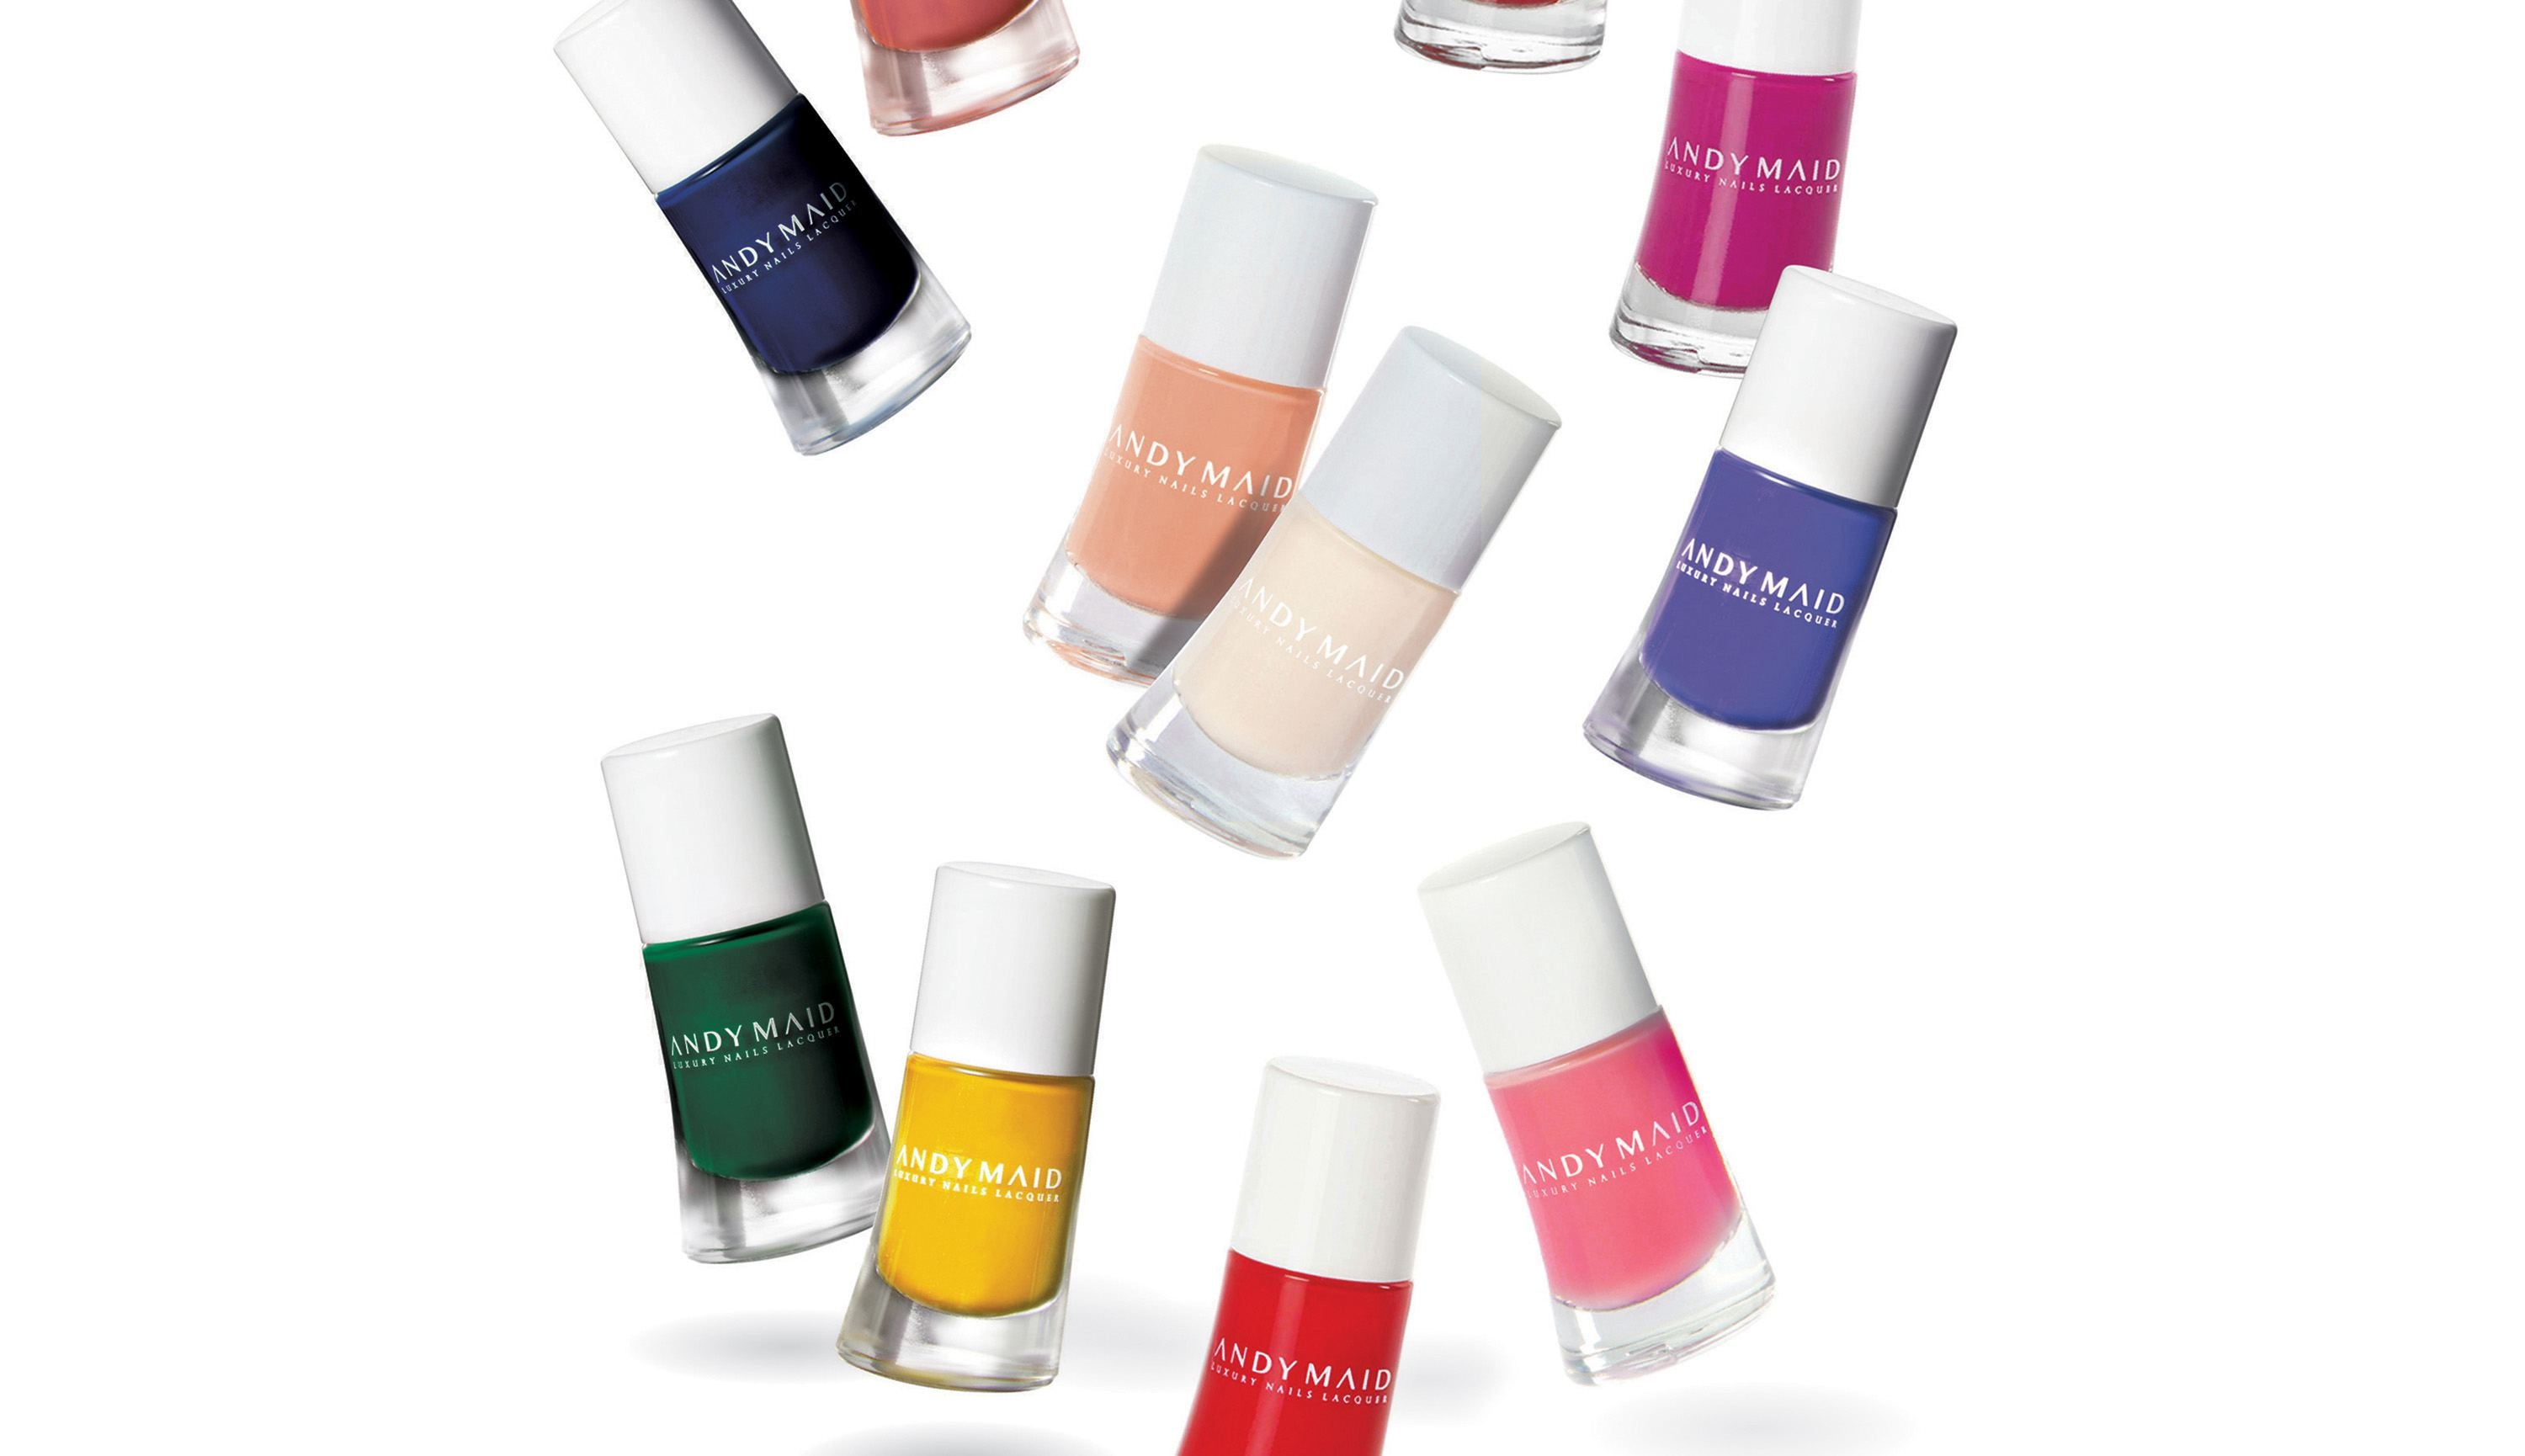 Luxury Nail Lacquer by Andy Maid-Italy